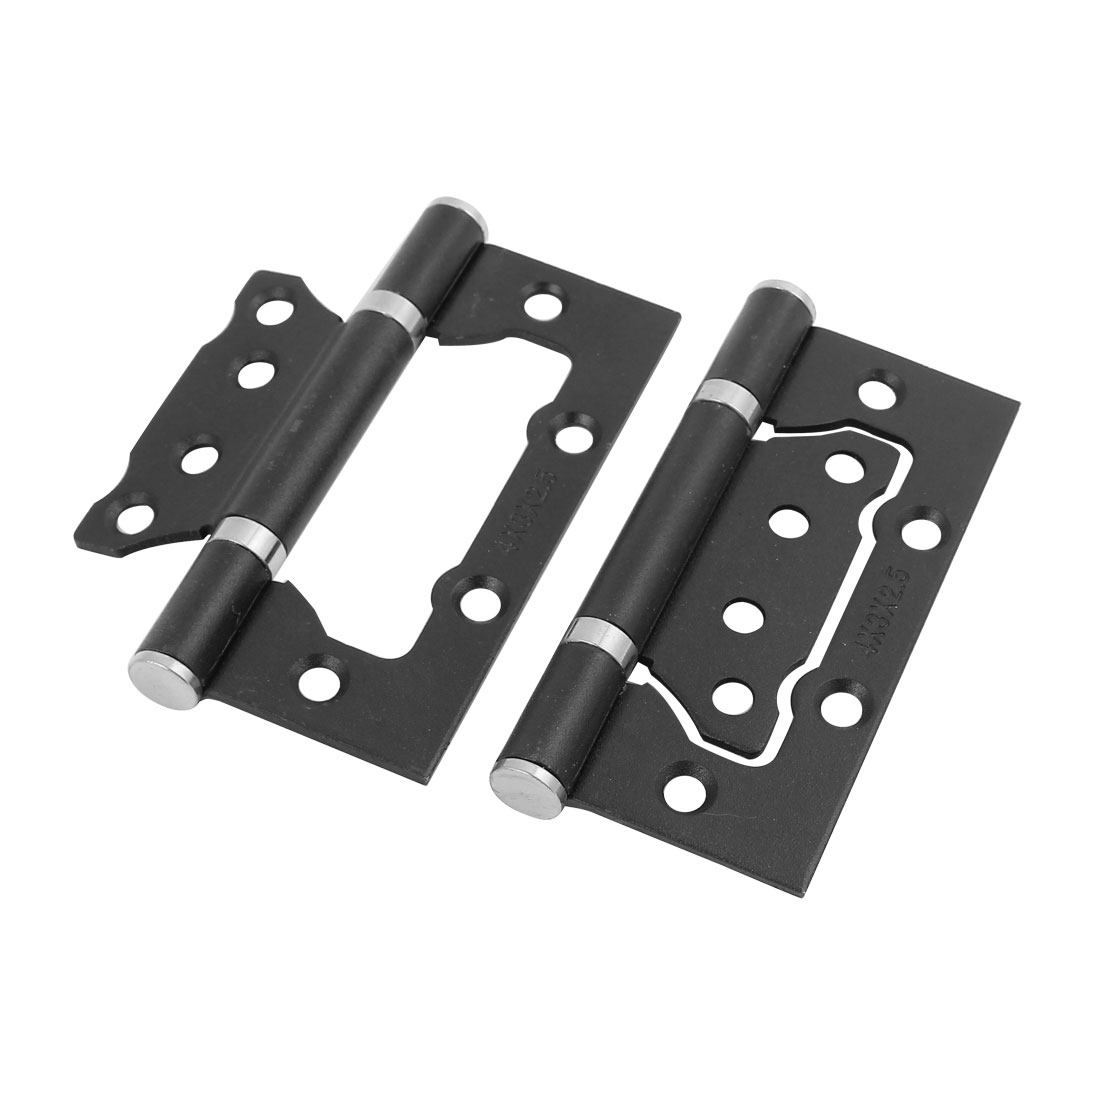 Home Furniture Wardrobe Cabinet Door Butt Hinge 10 x 5 x 1.2cm Black 2pcs